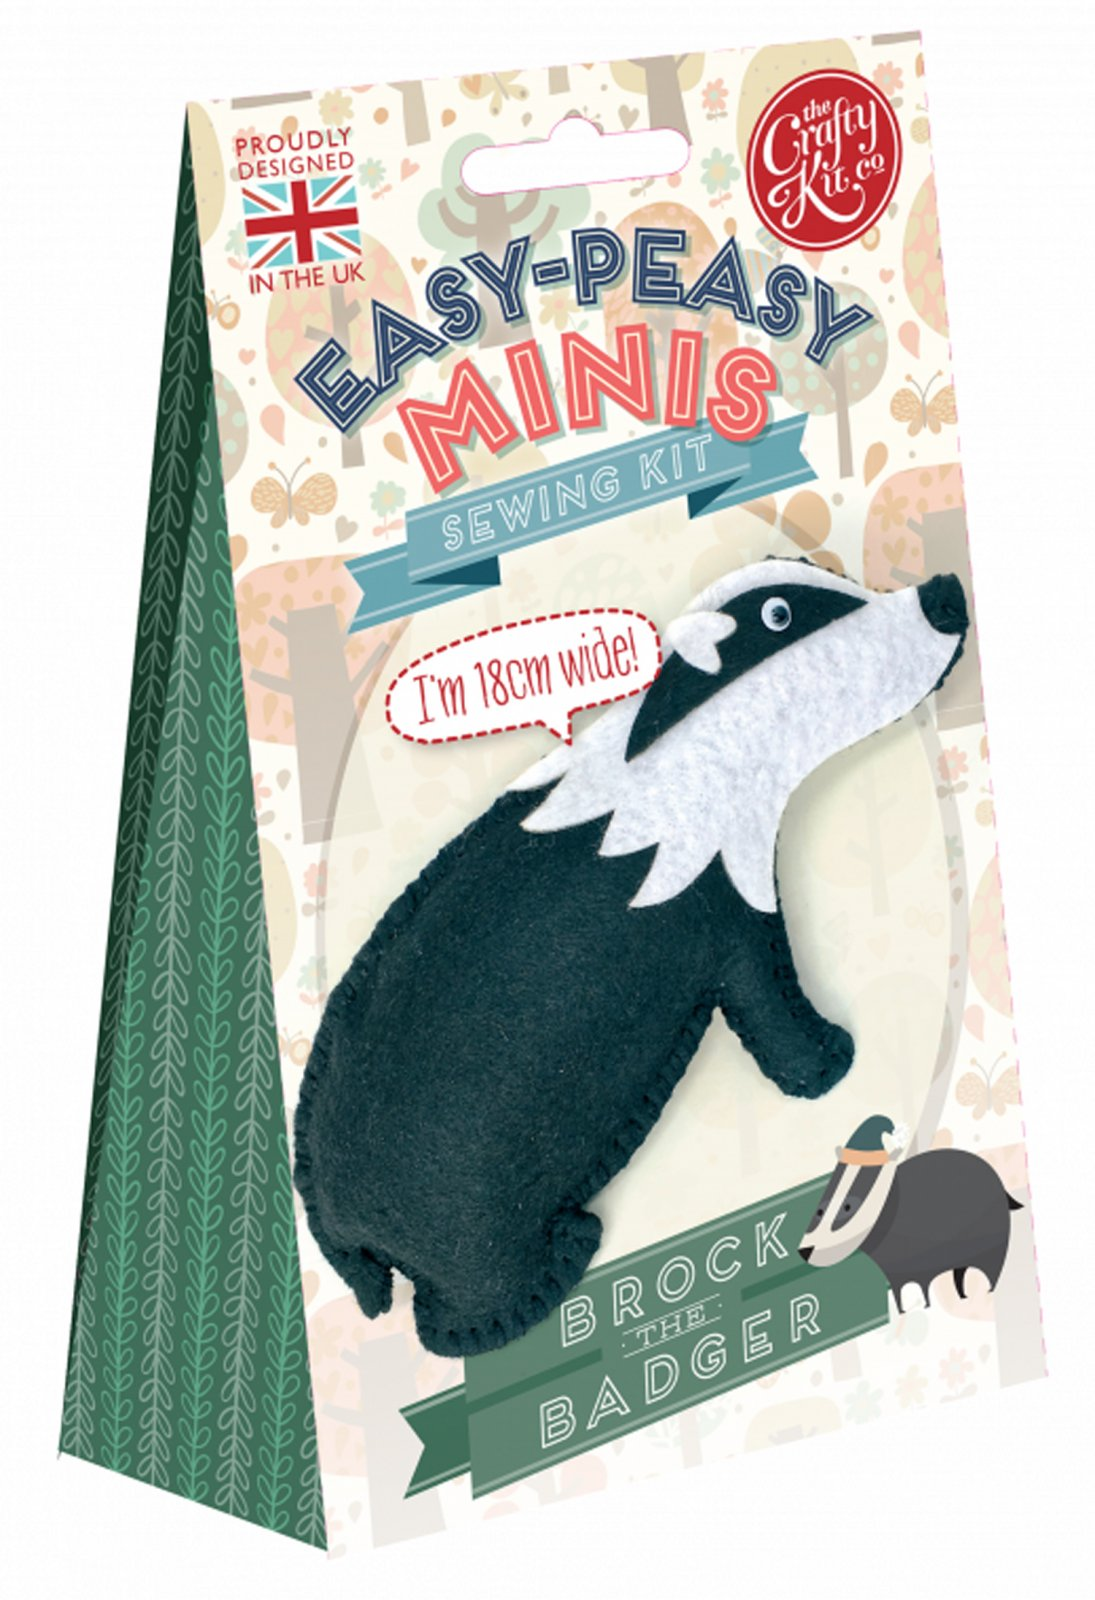 Sewing Kit - Brock The Badger - By The Crafty Kit Co